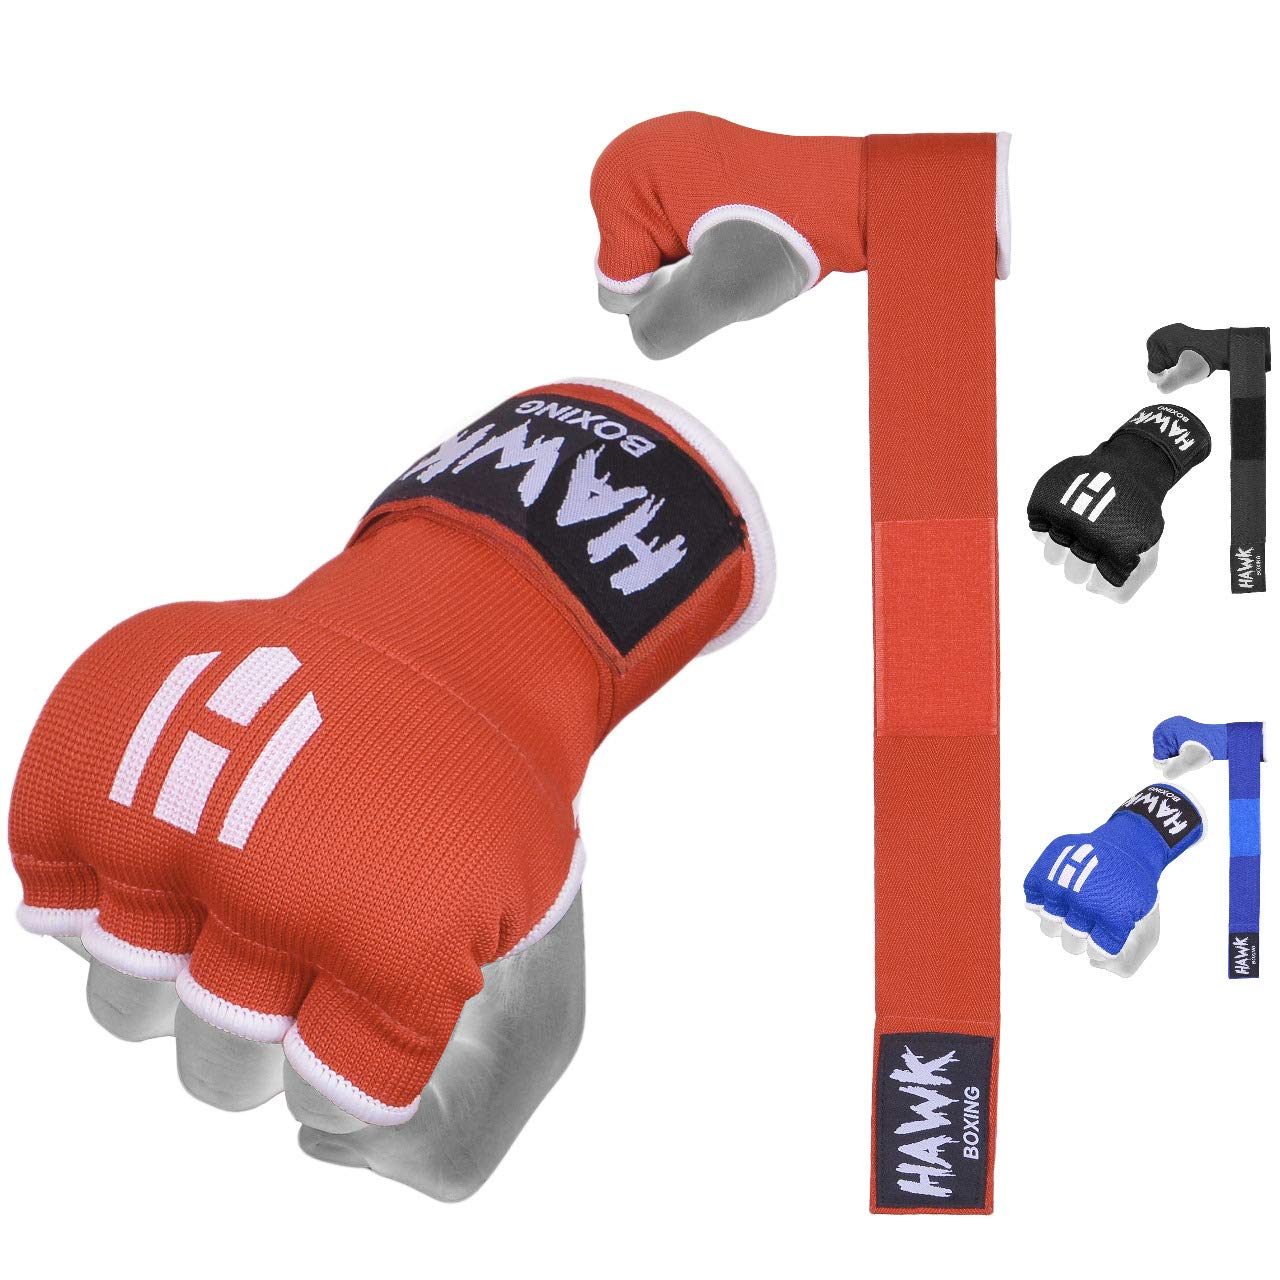 Image result for Hawk Boxing Kickboxing Protector Hand Wrap